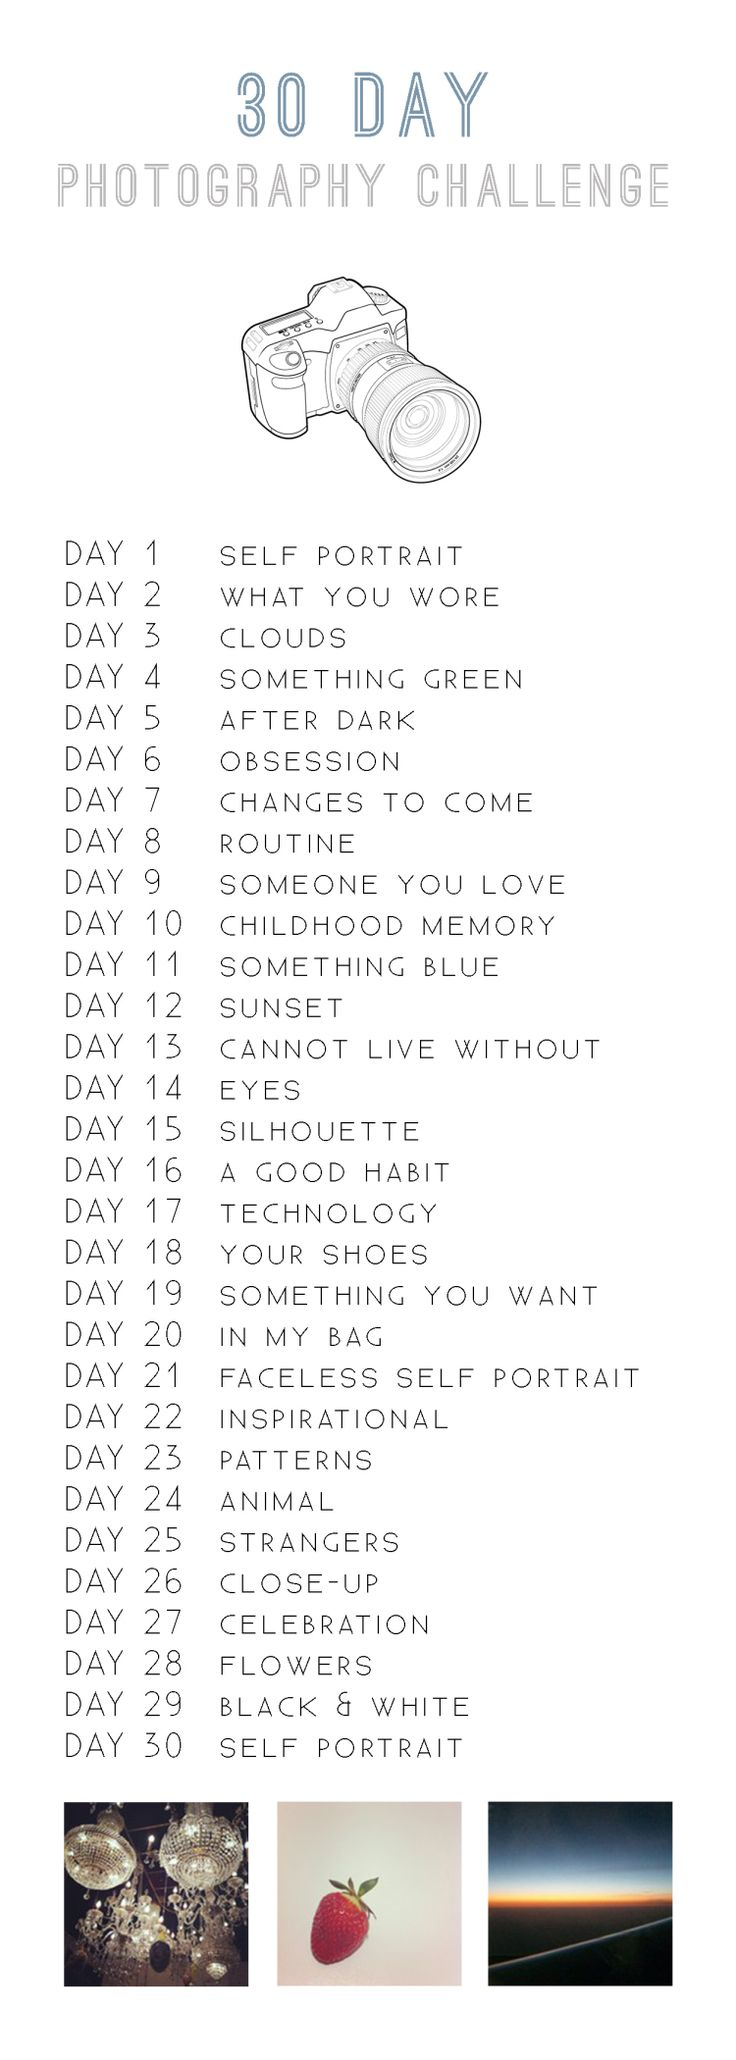 30 day photography challenge. Doing this for my birth month, May. Especially love the one for my birthday. Look forward to it. I'll be starting a board for this.